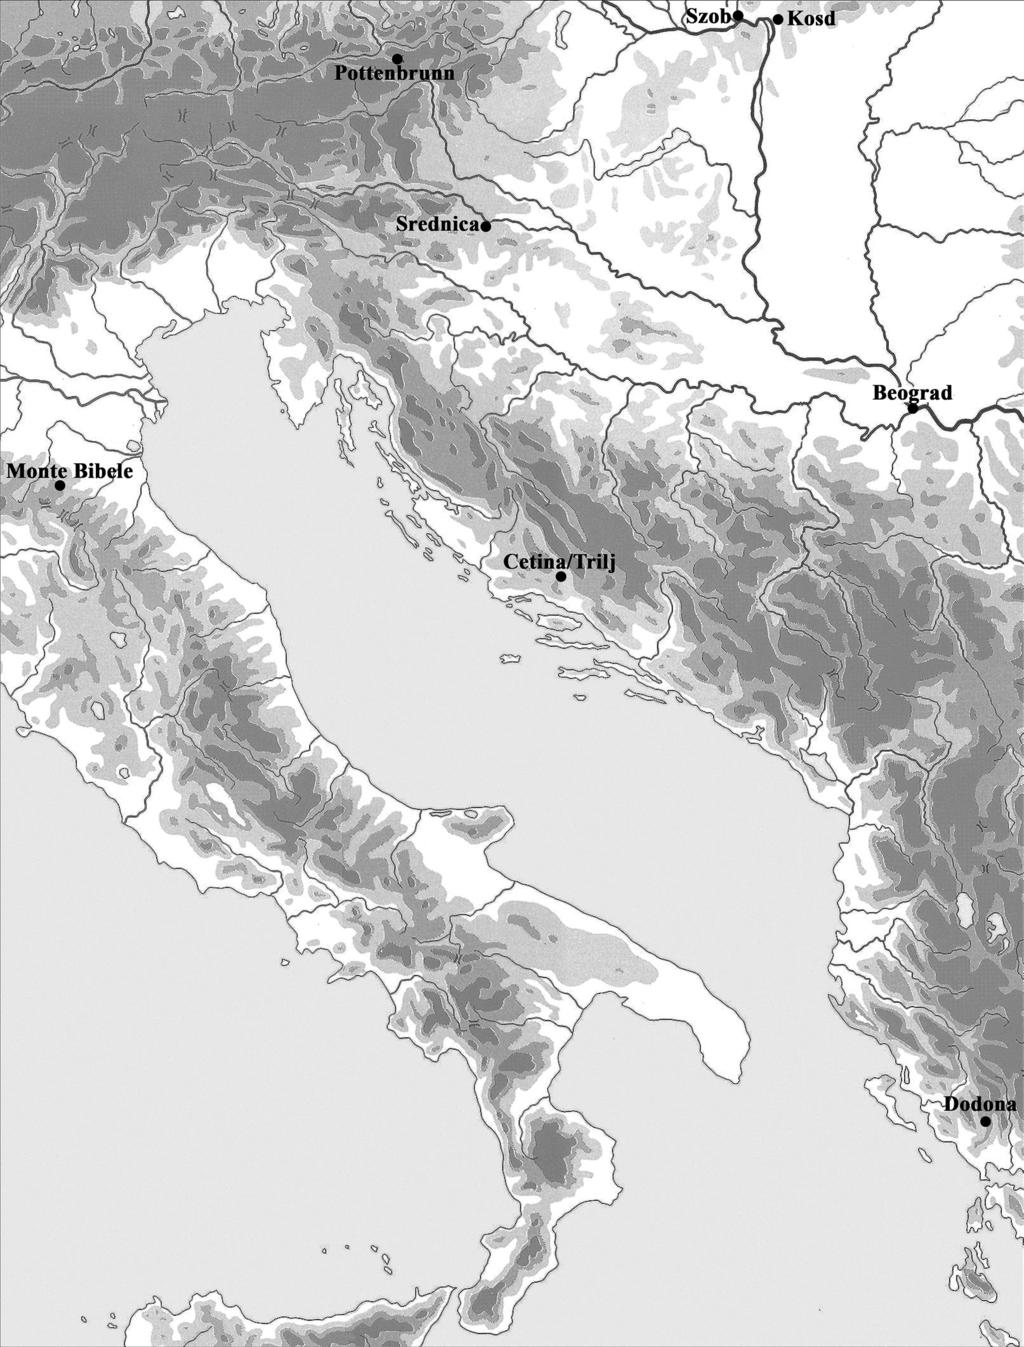 Fig. 3. Map presenting the major sites mentioned in the text nean.